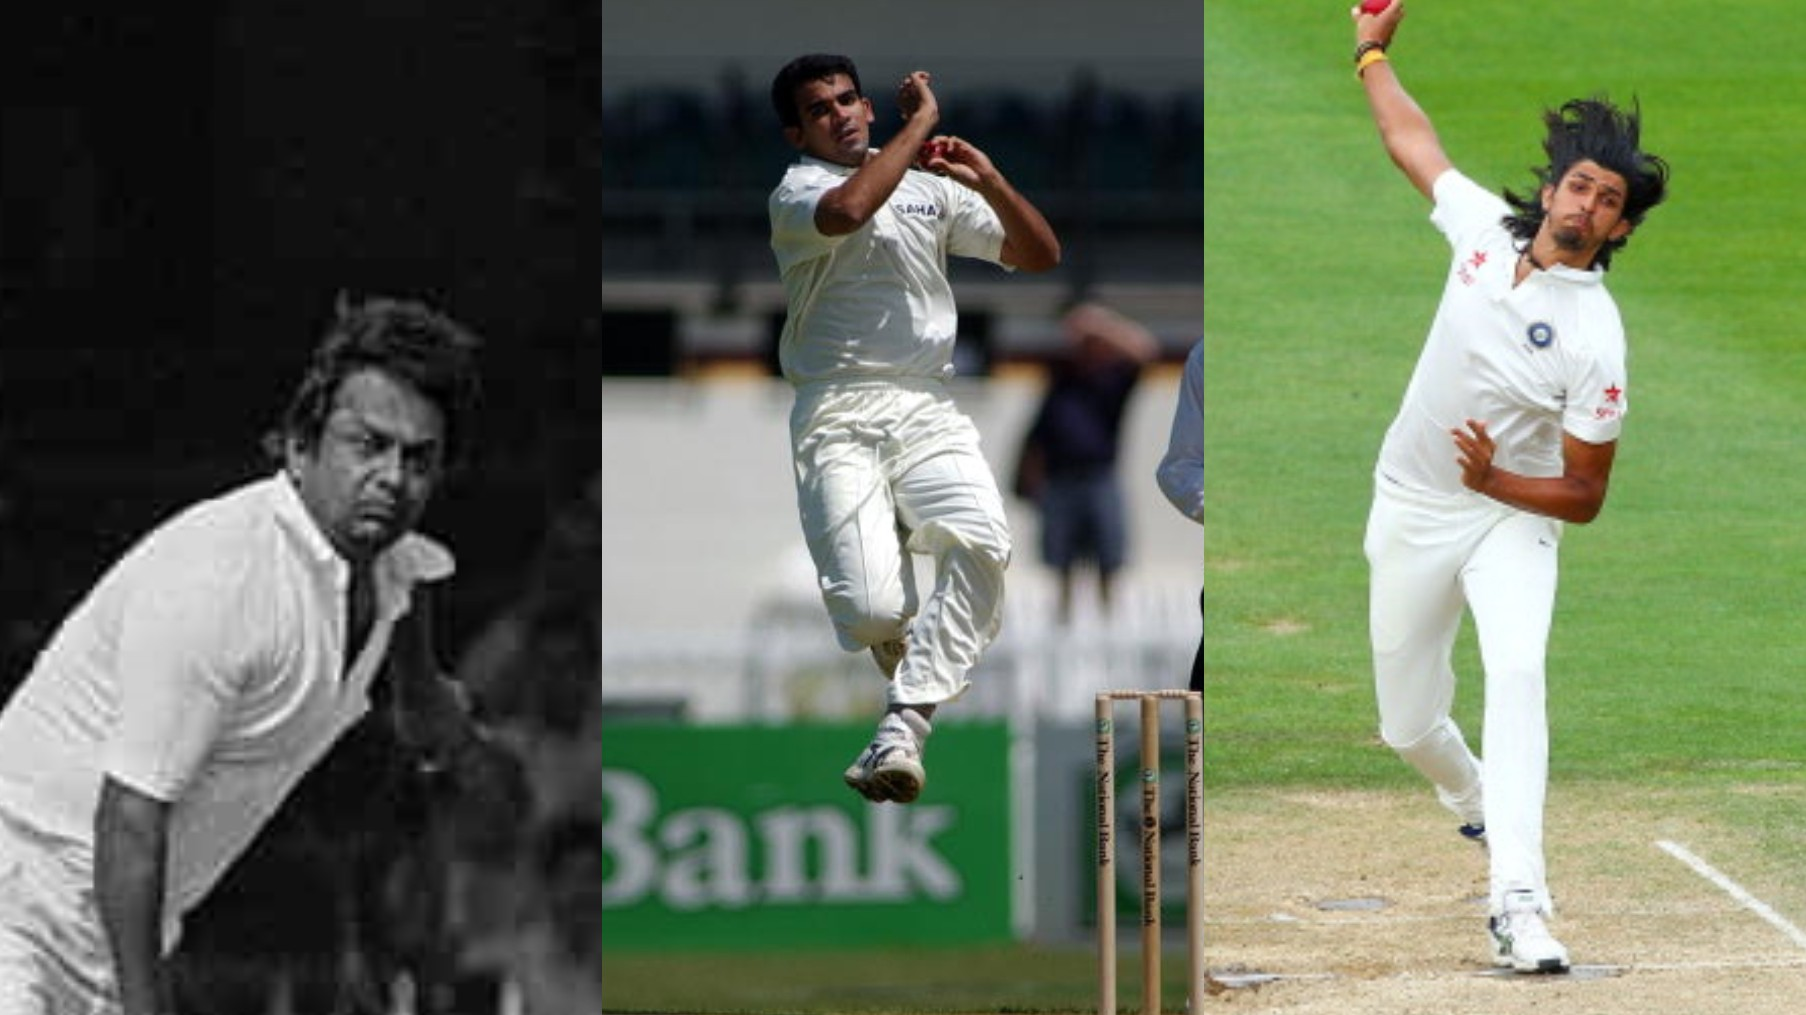 NZ v IND 2020: 5 of the best performances in Tests by Indian bowlers in New Zealand